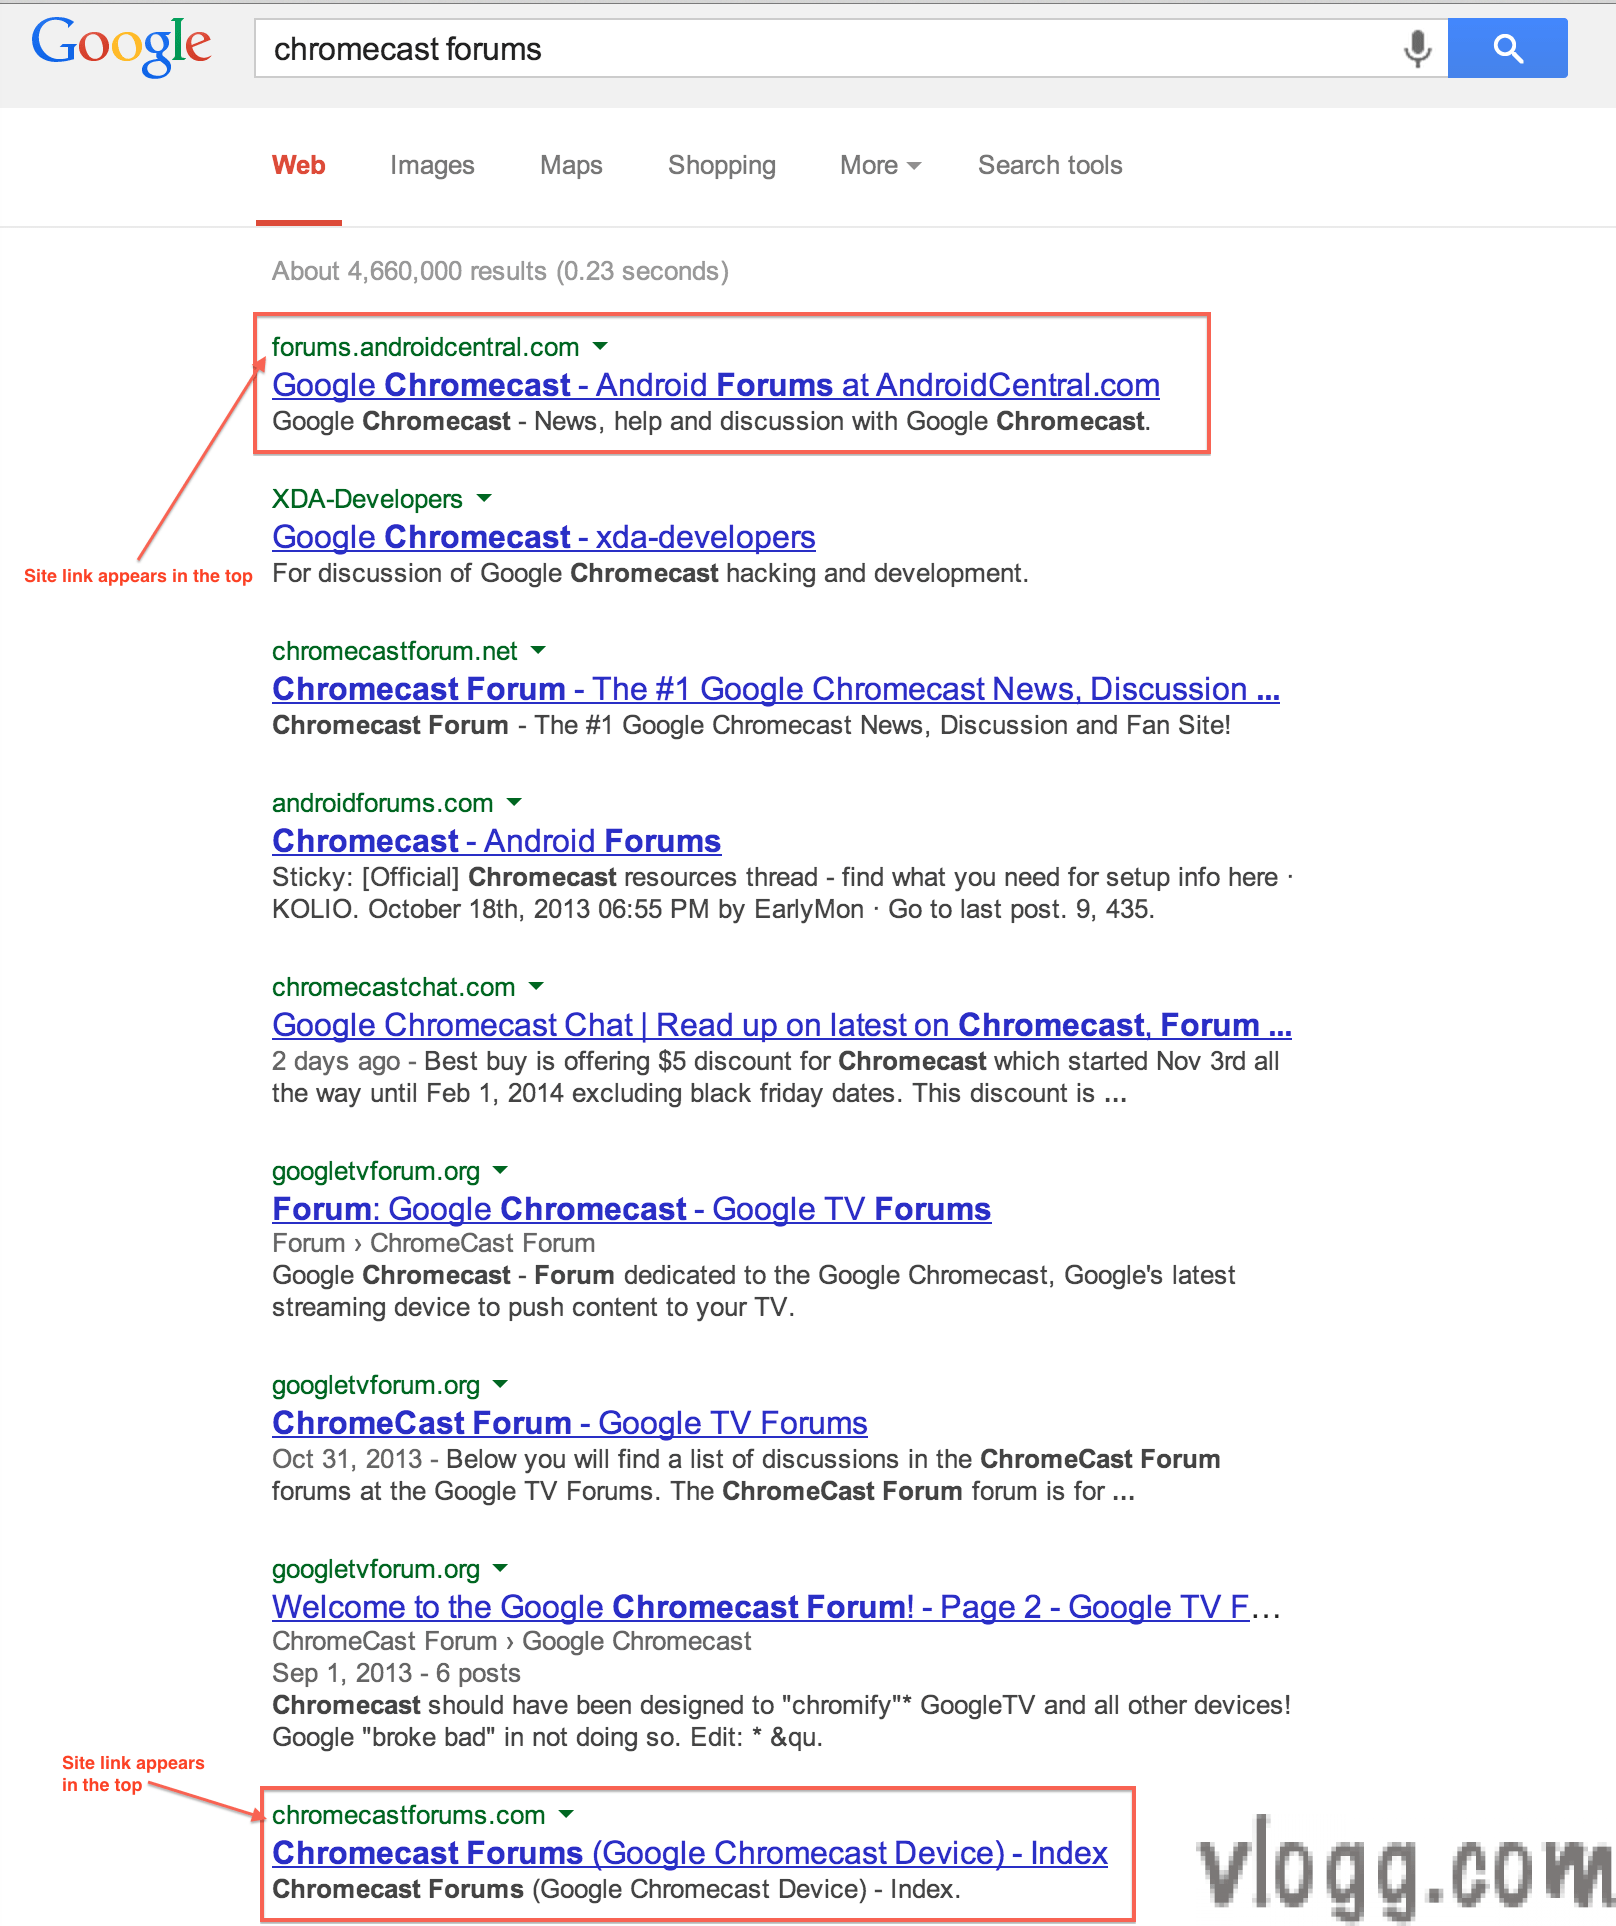 Google Image Result For Http Www Sourcecollection Com: Spotted: Google Trying Search Results With Sitelinks In Top?